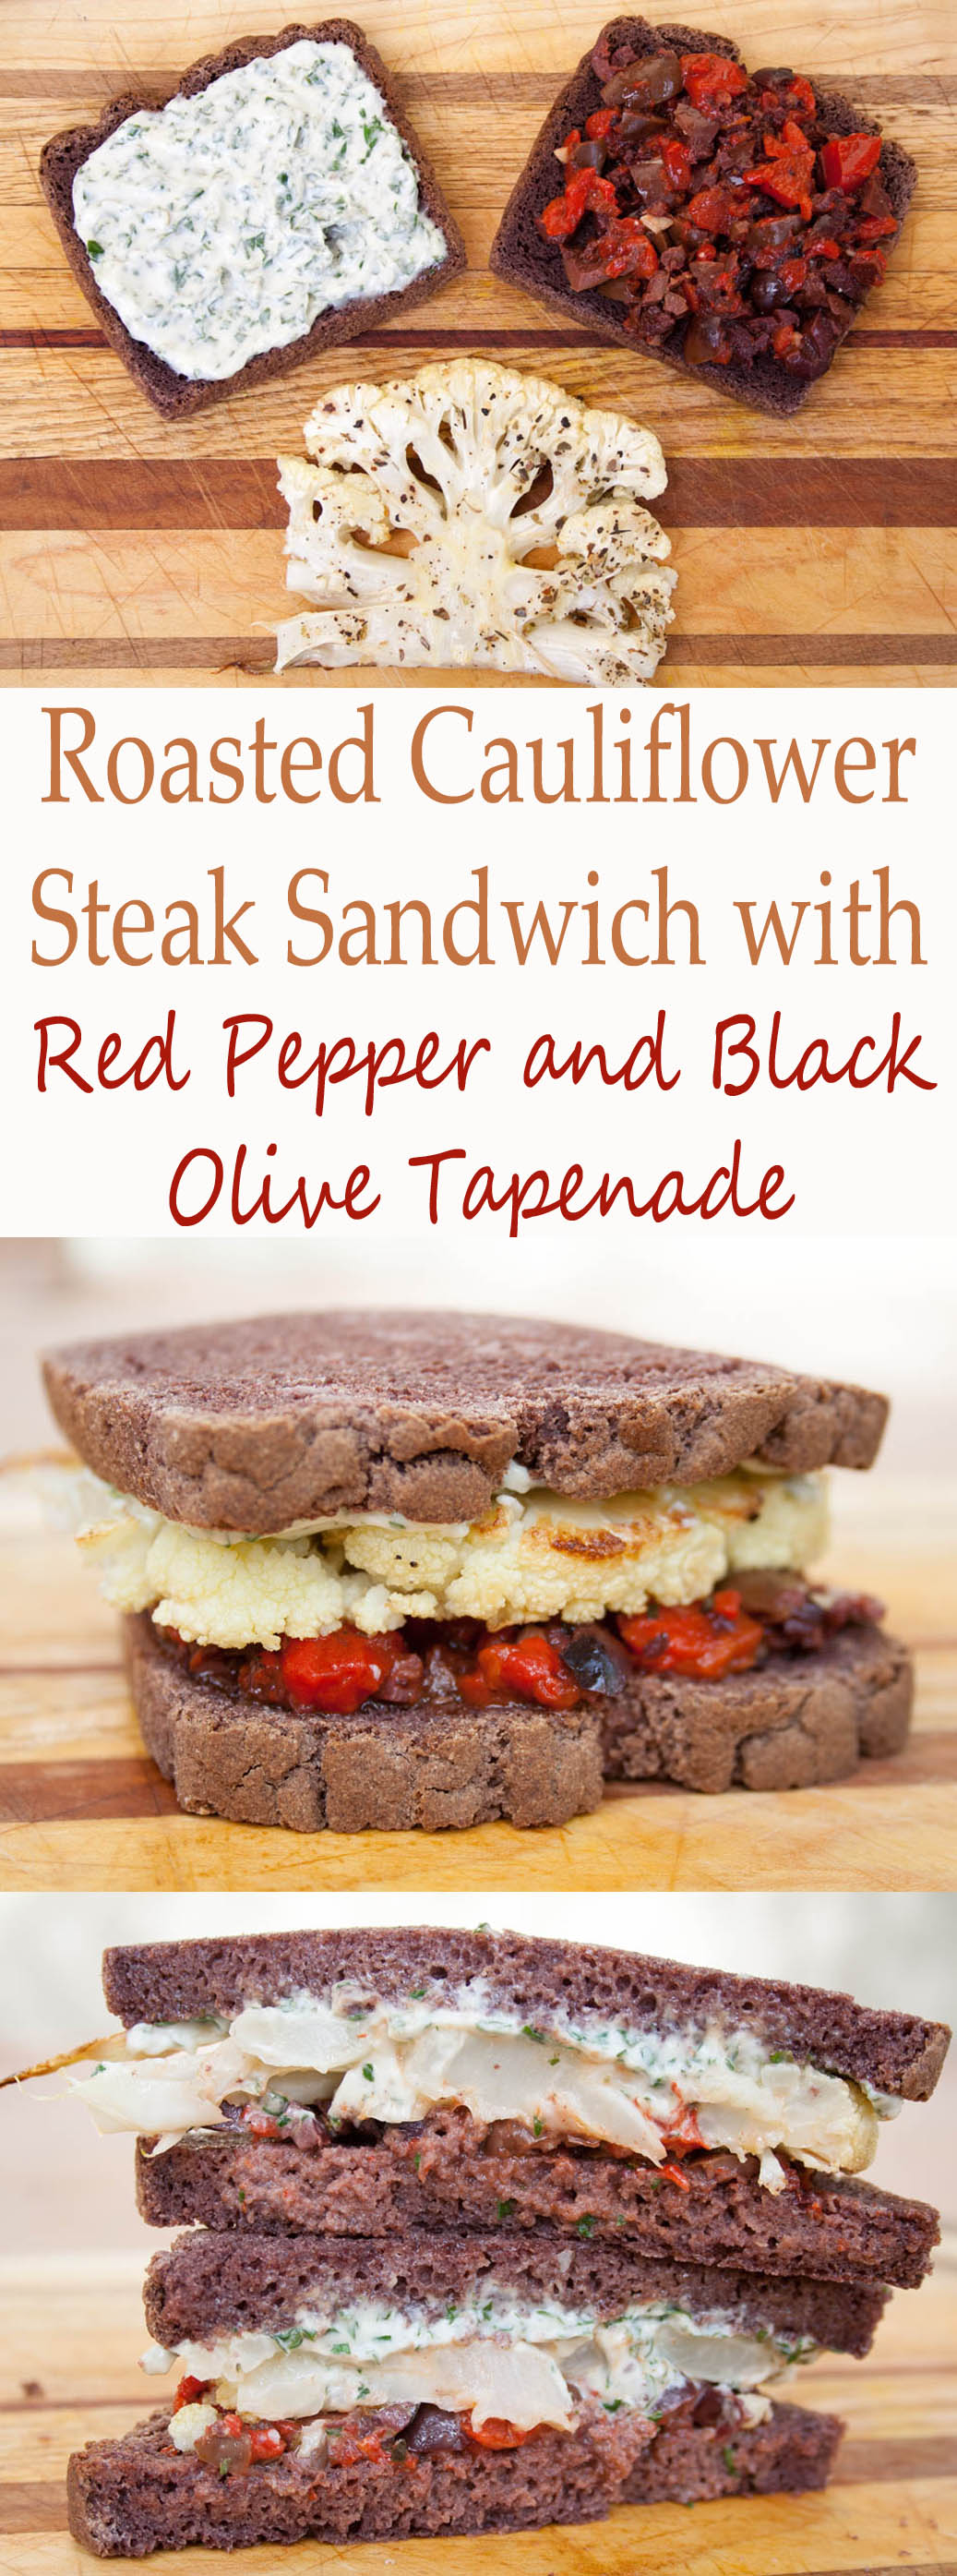 Roasted Cauliflower Steak Sandwich with Red Pepper and Black Olive Tapenade collage photo with text.